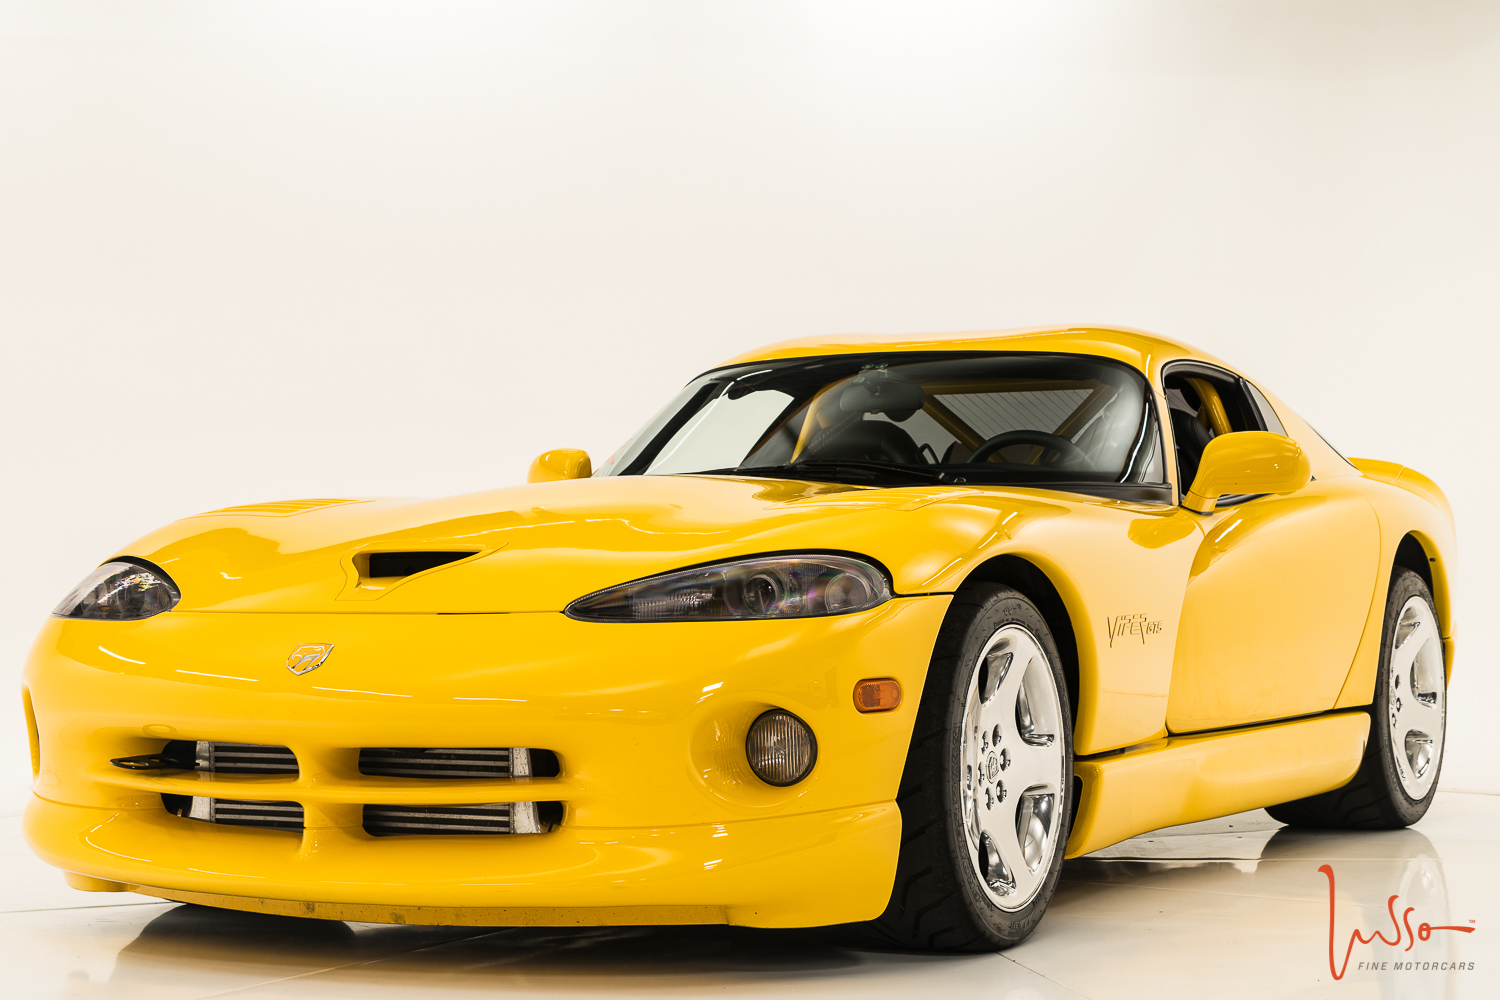 2001 dodge viper gts ebay. Black Bedroom Furniture Sets. Home Design Ideas